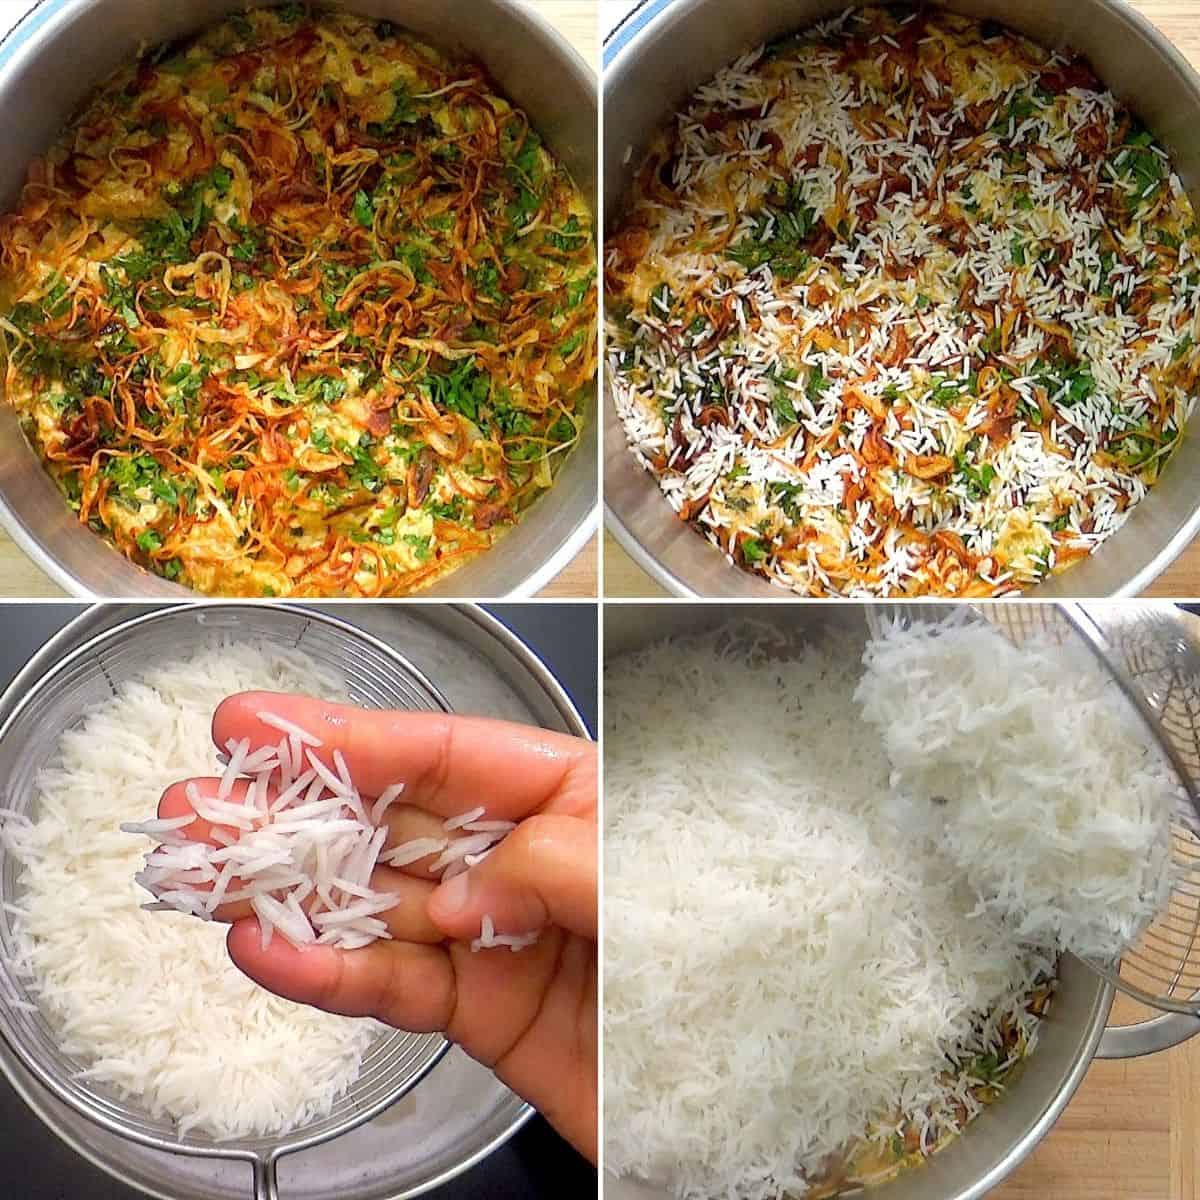 Cooking rice and layering with meat and marinade.